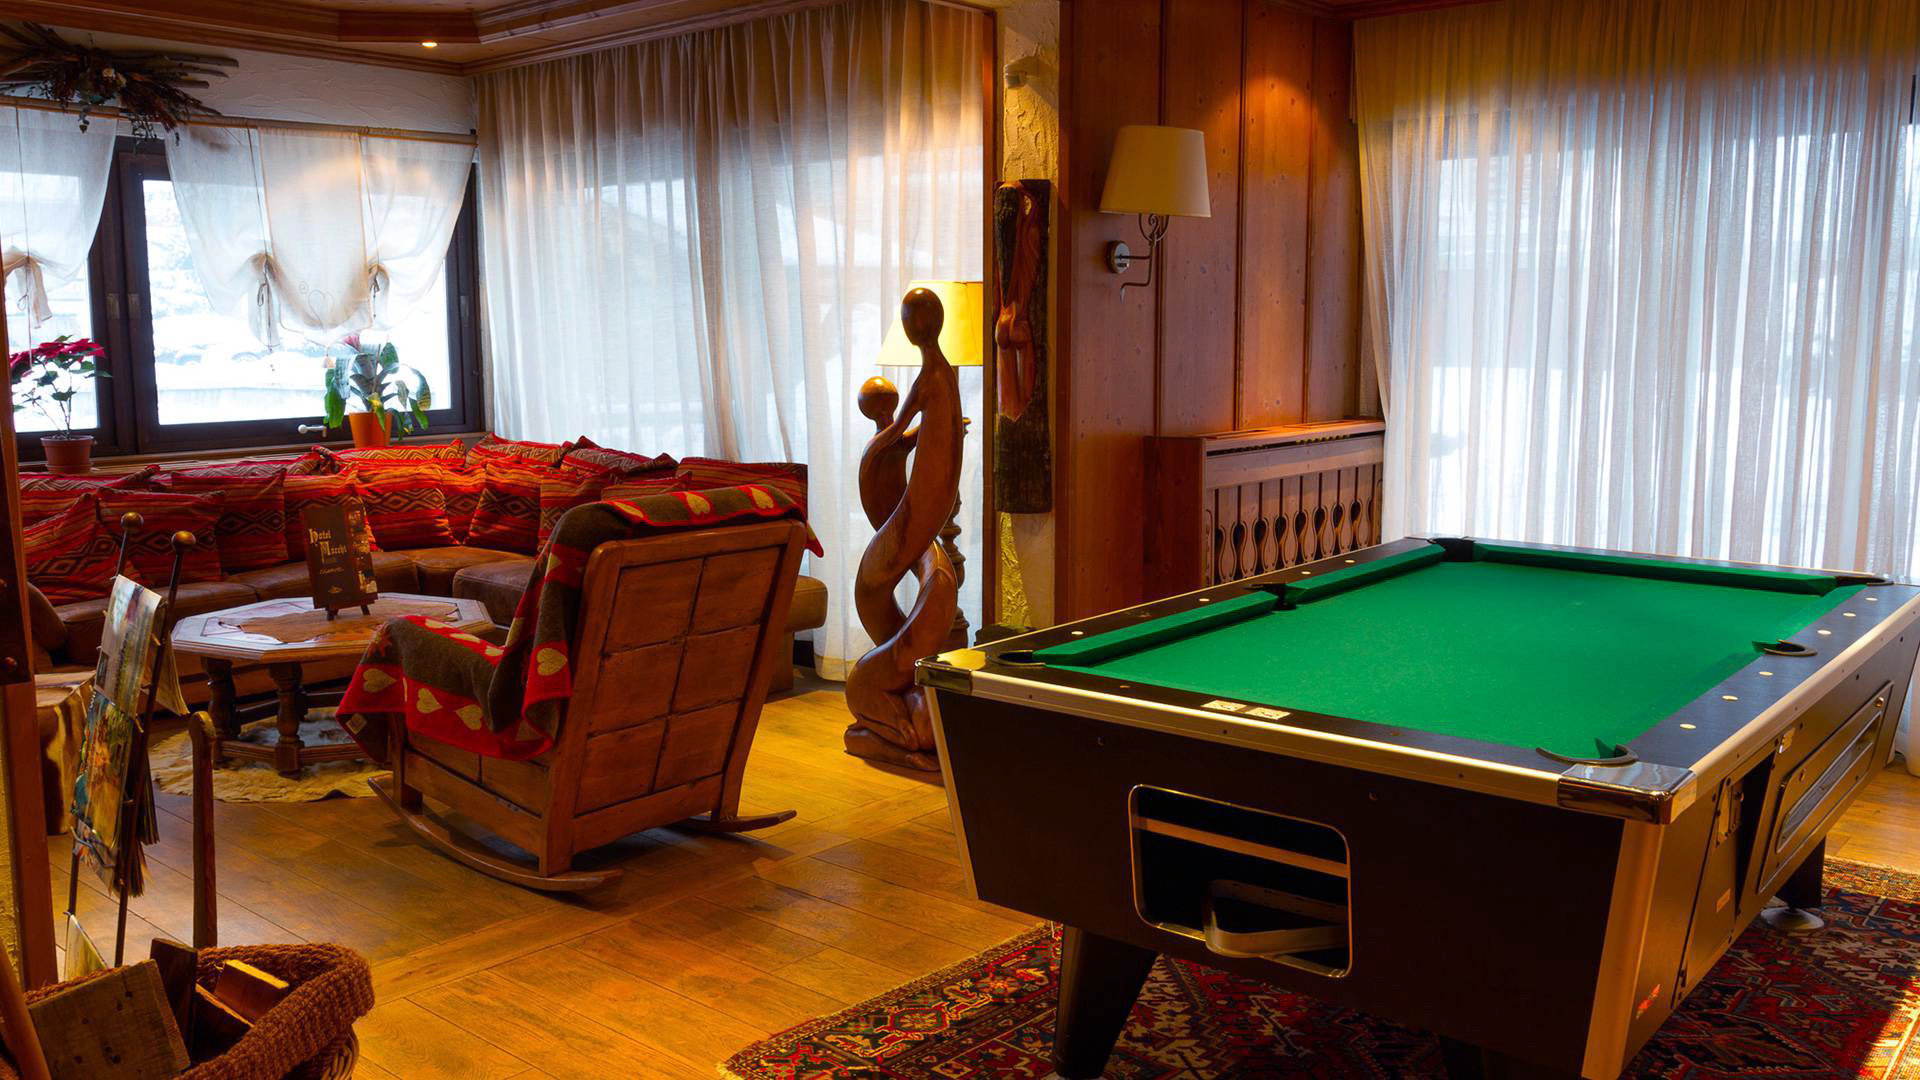 pool table poolroom recreation room billiard room building scene